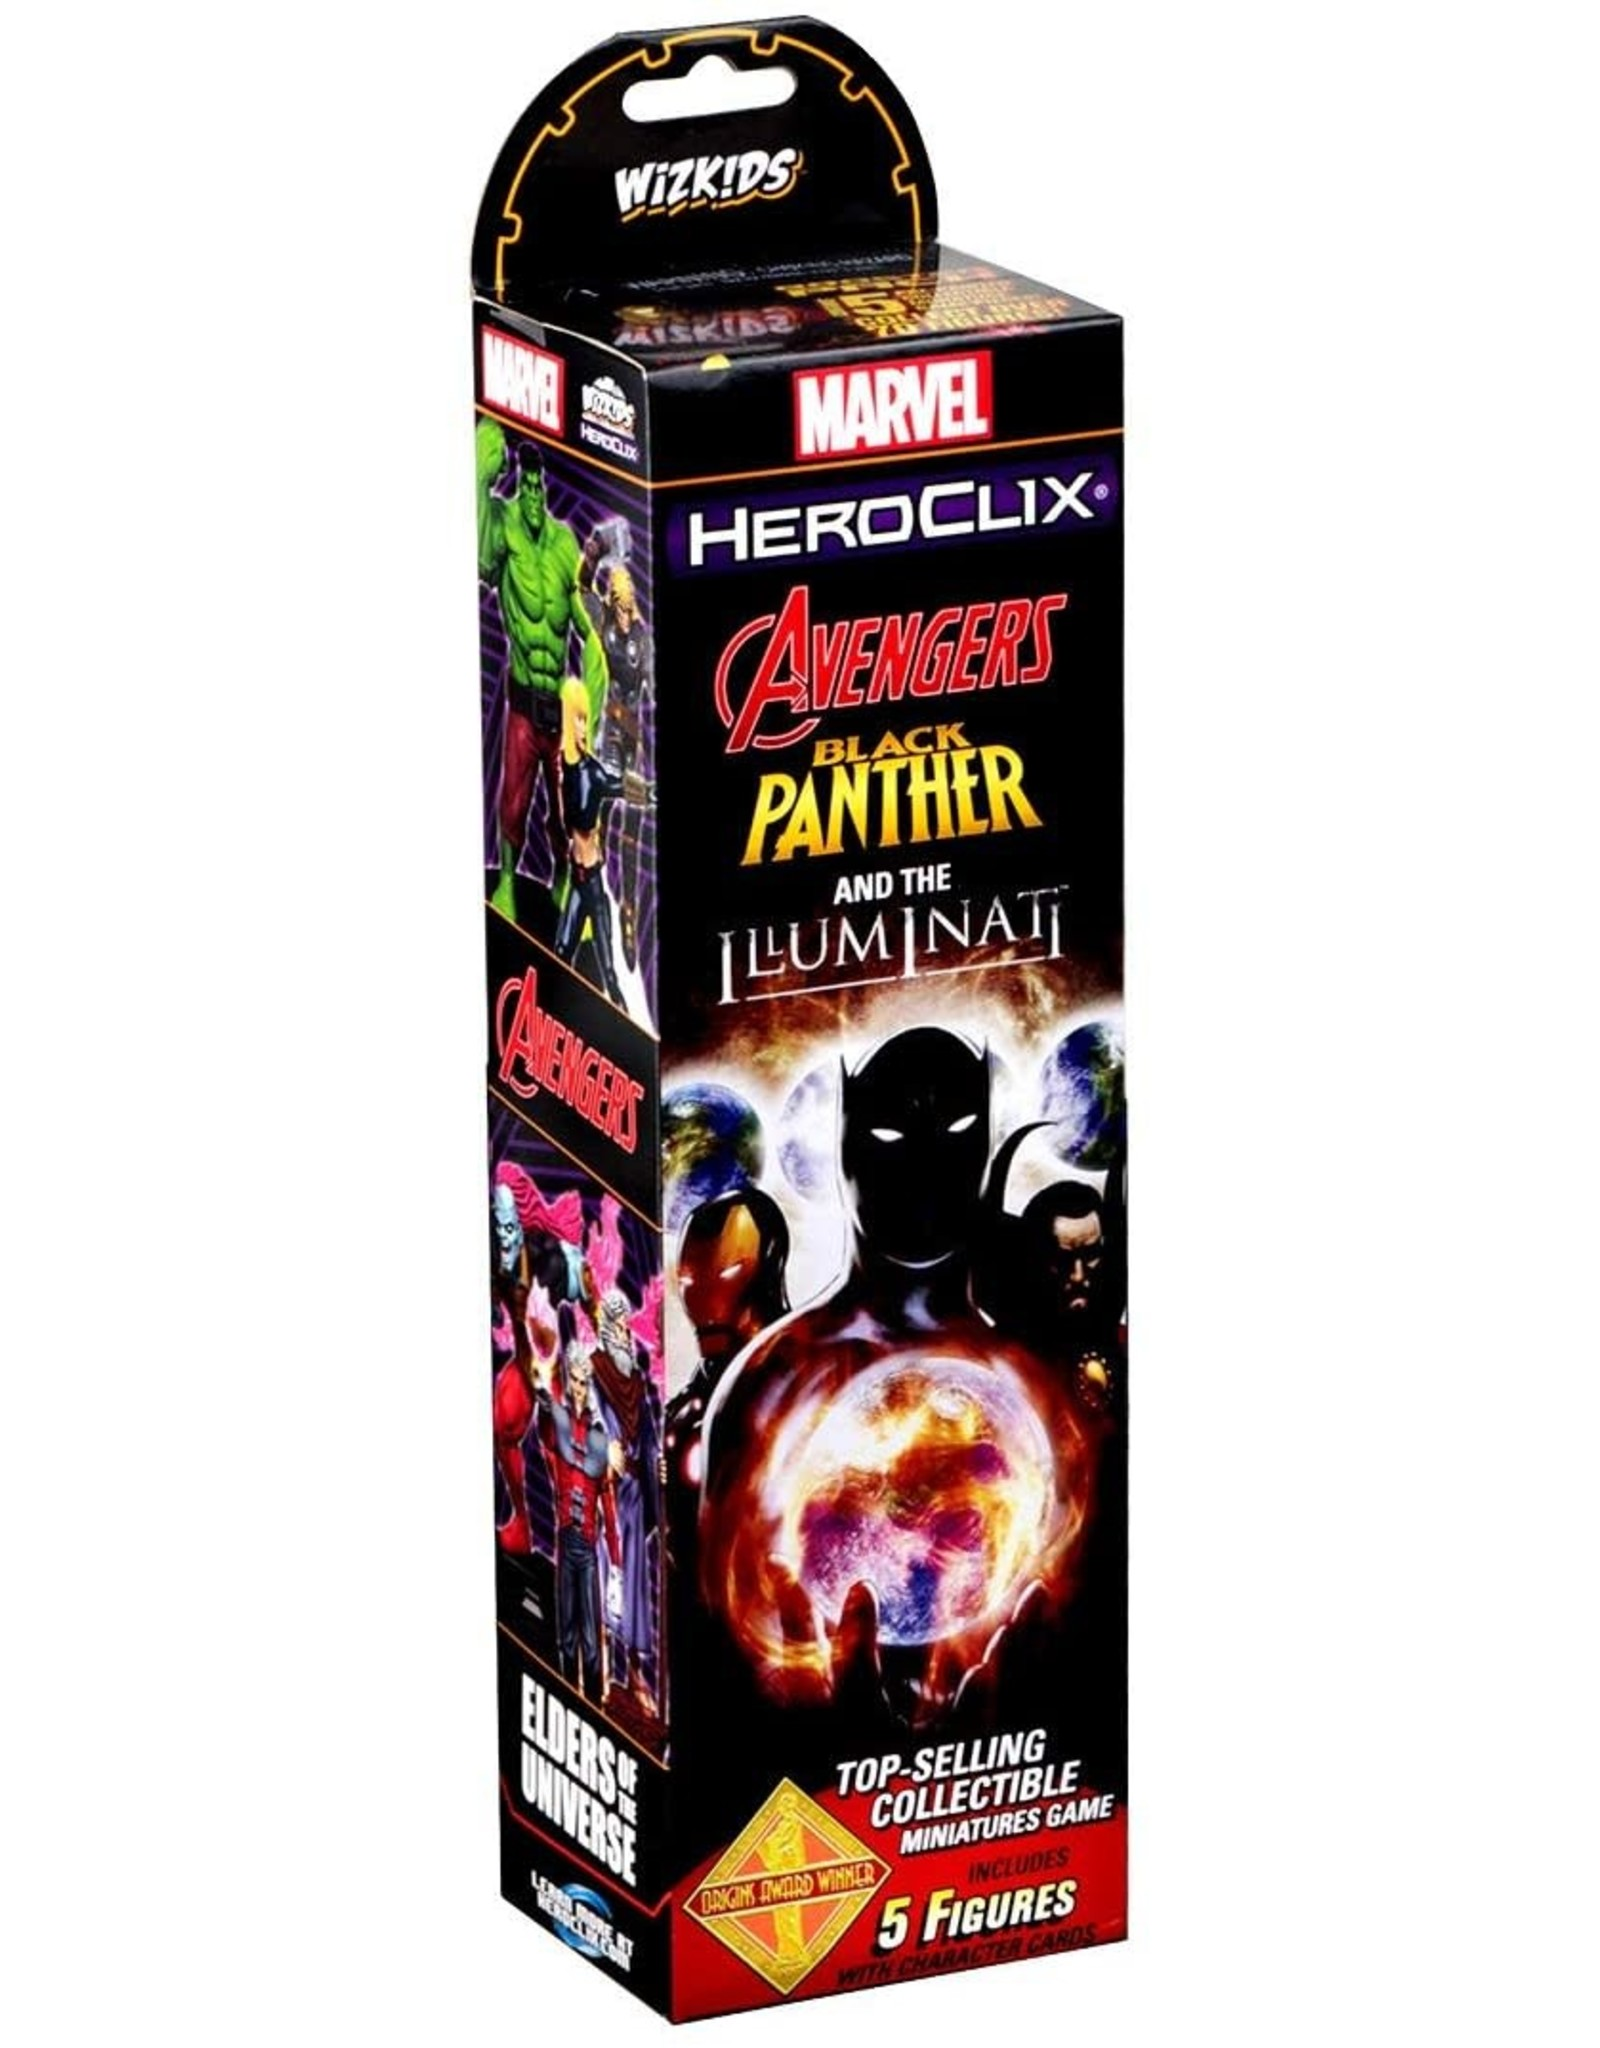 WizKids Marvel Heroclix: Black Panther and the Illuminati Booster Pack